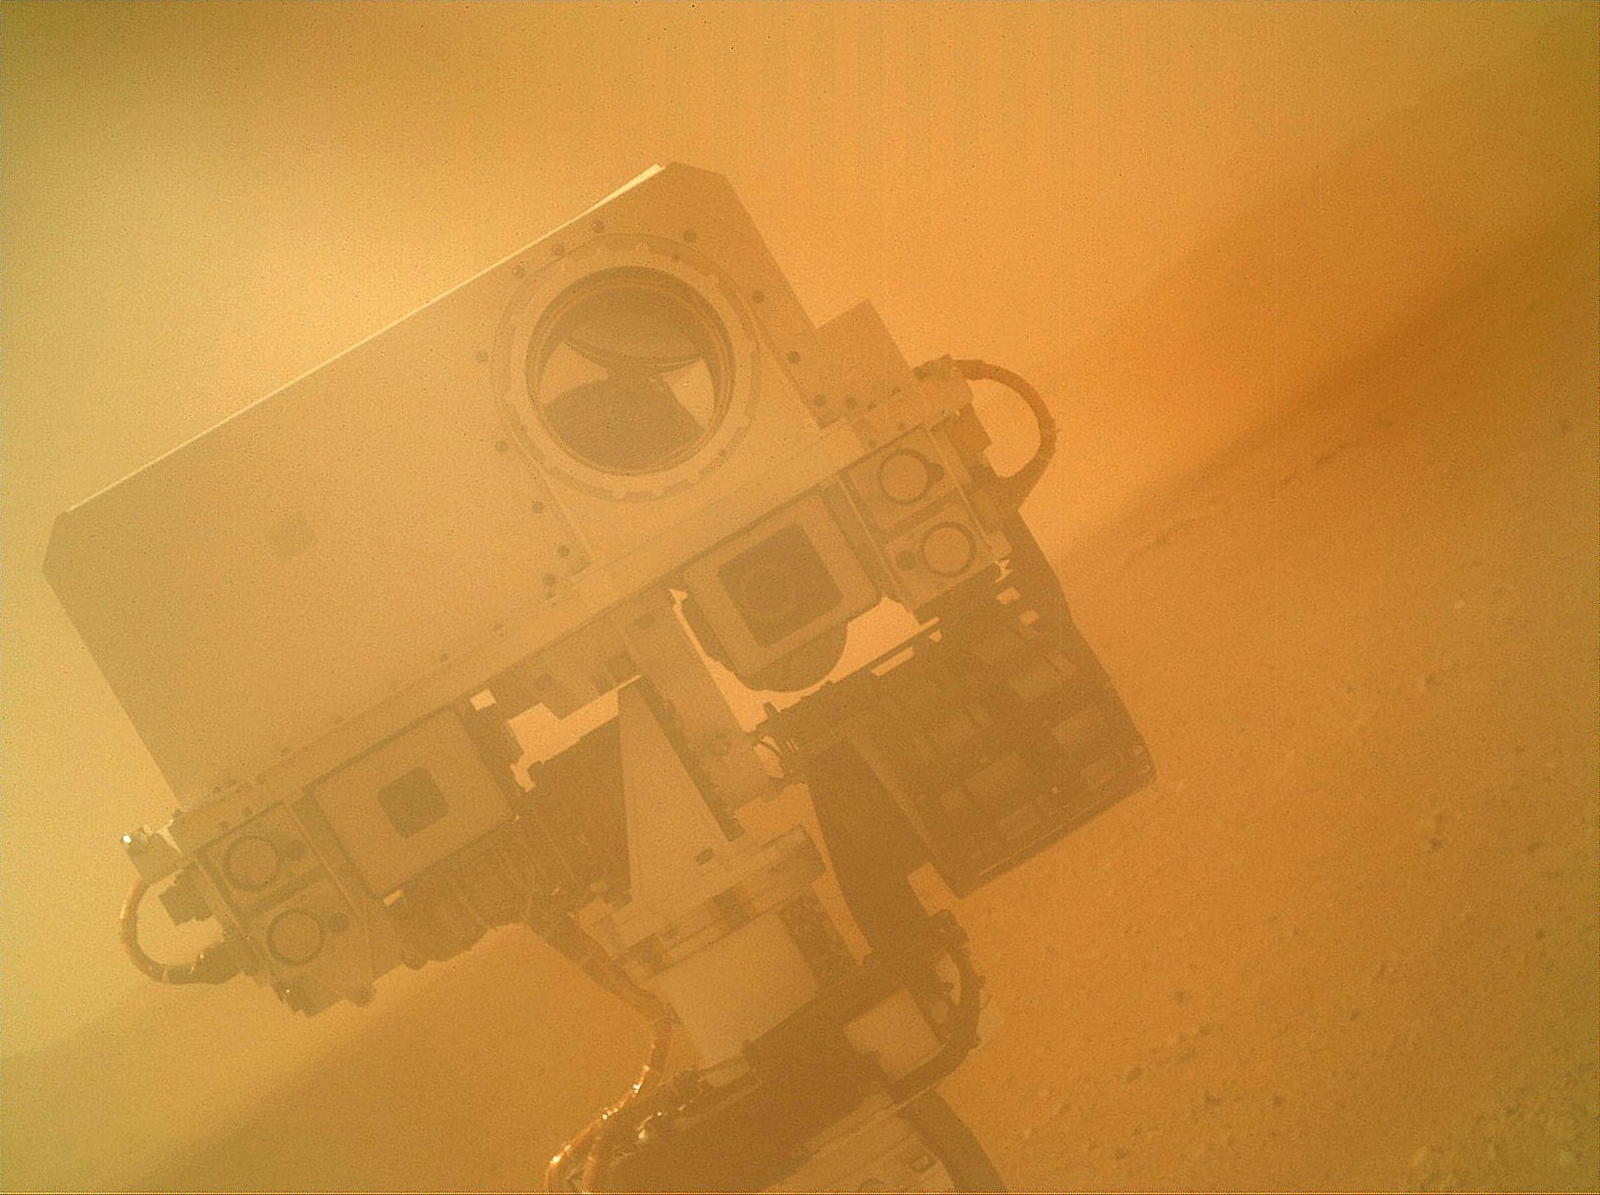 -Mars Curiosity Rover Takes Self Portrait Original Space Selfie jpgMars Curiosity Selfie